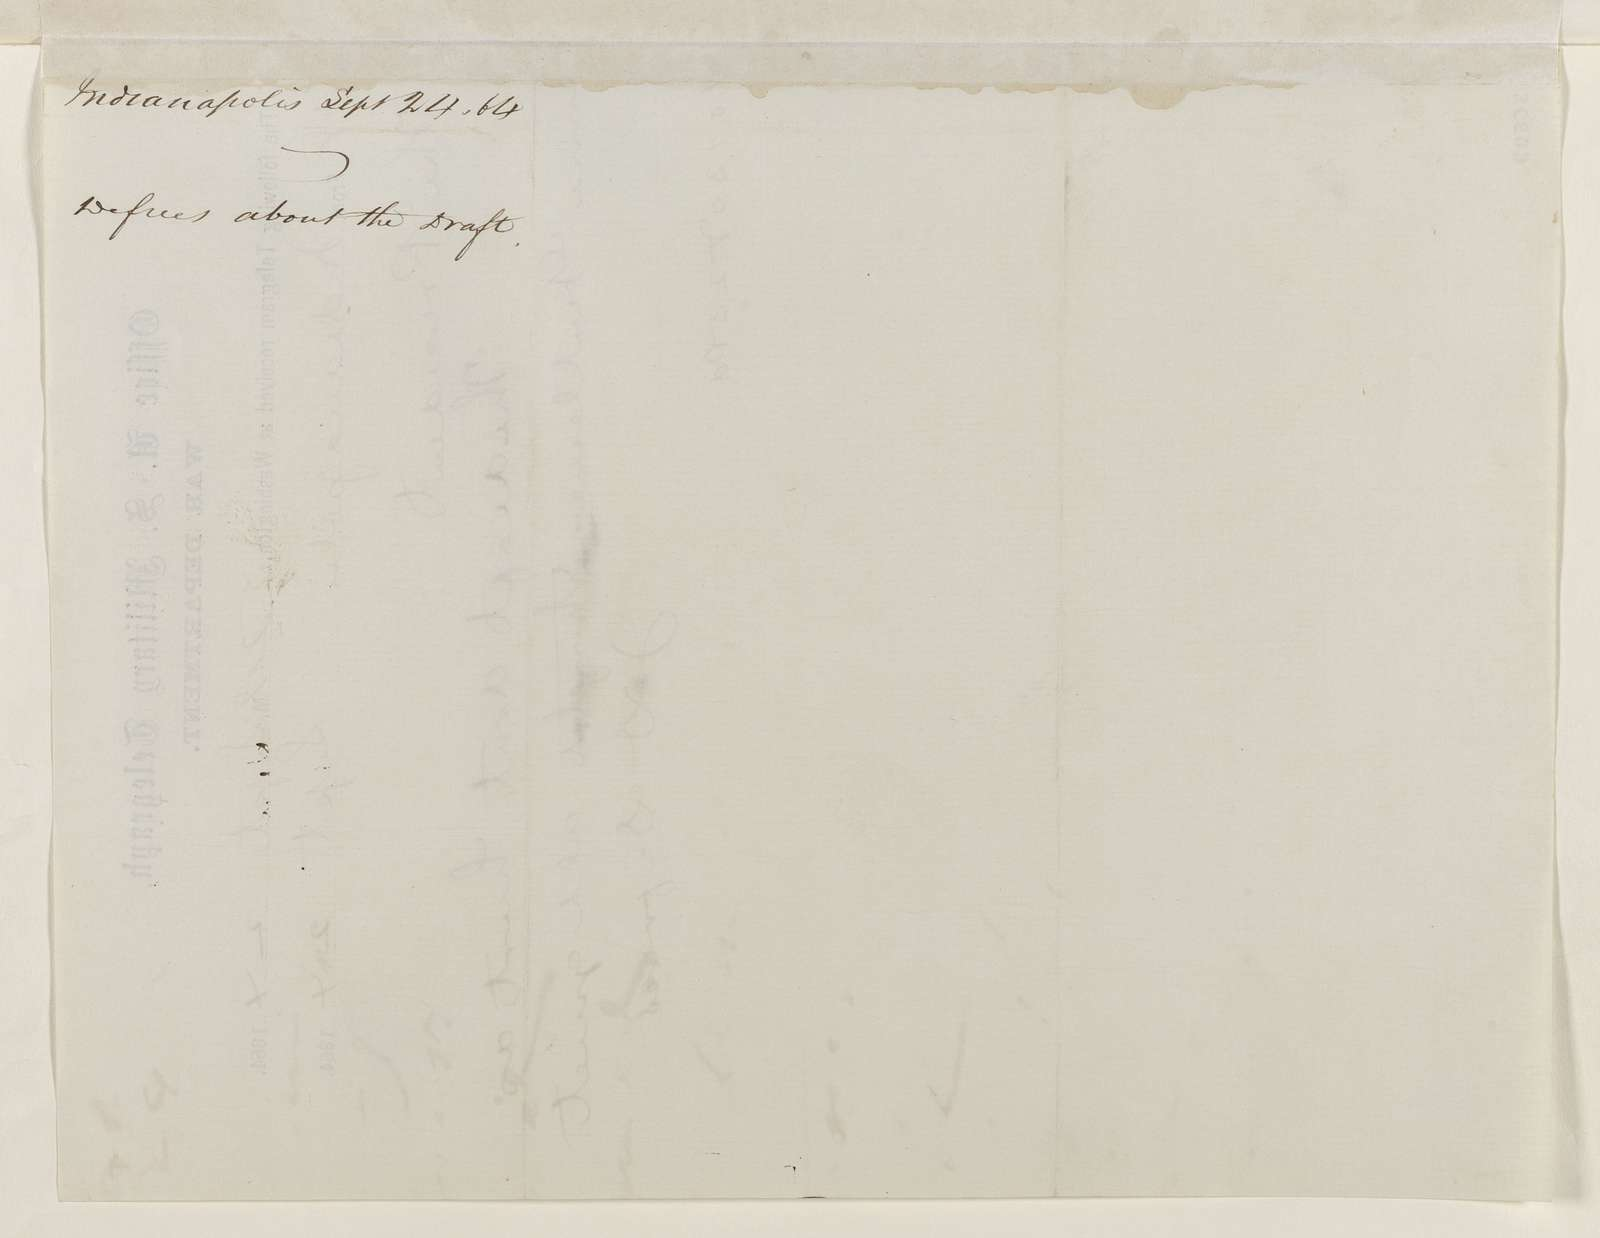 Abraham Lincoln papers: Series 1. General Correspondence. 1833-1916: John D. Defrees to Abraham Lincoln, Saturday, September 24, 1864 (Telegram concerning conscription in Indiana)